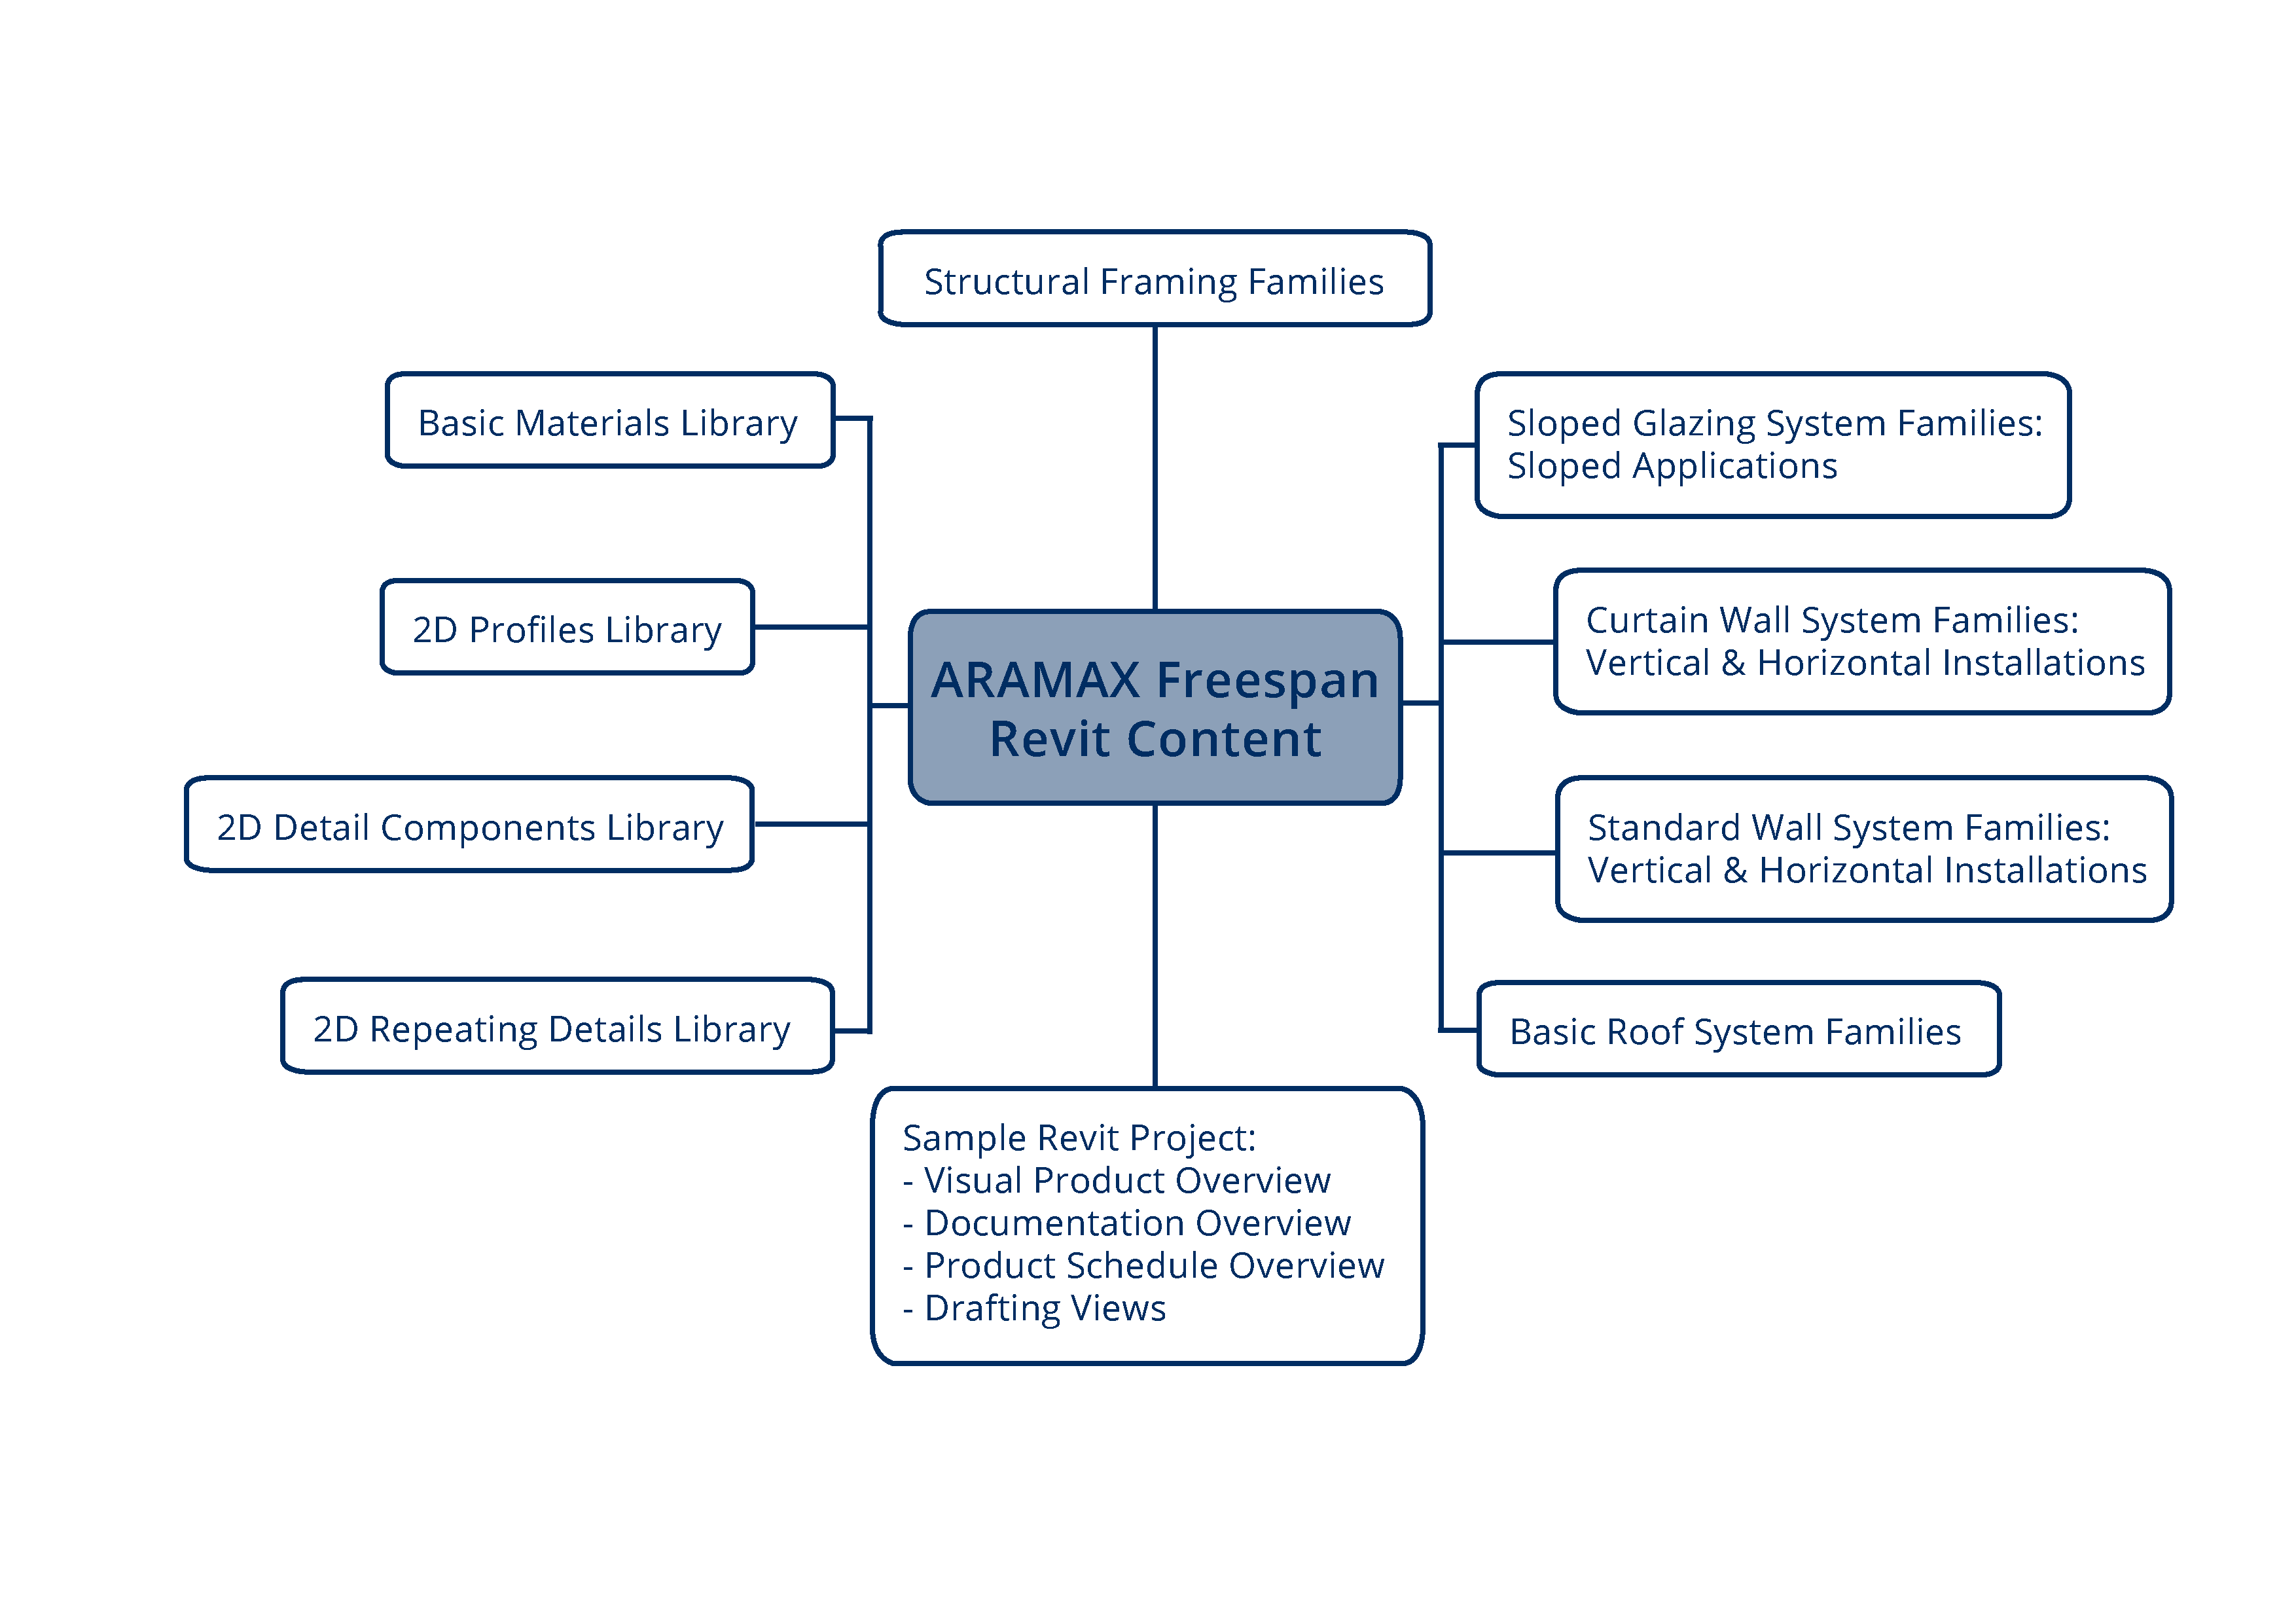 How to Use Fielders ARAMAX® Freespan Revit Content Library